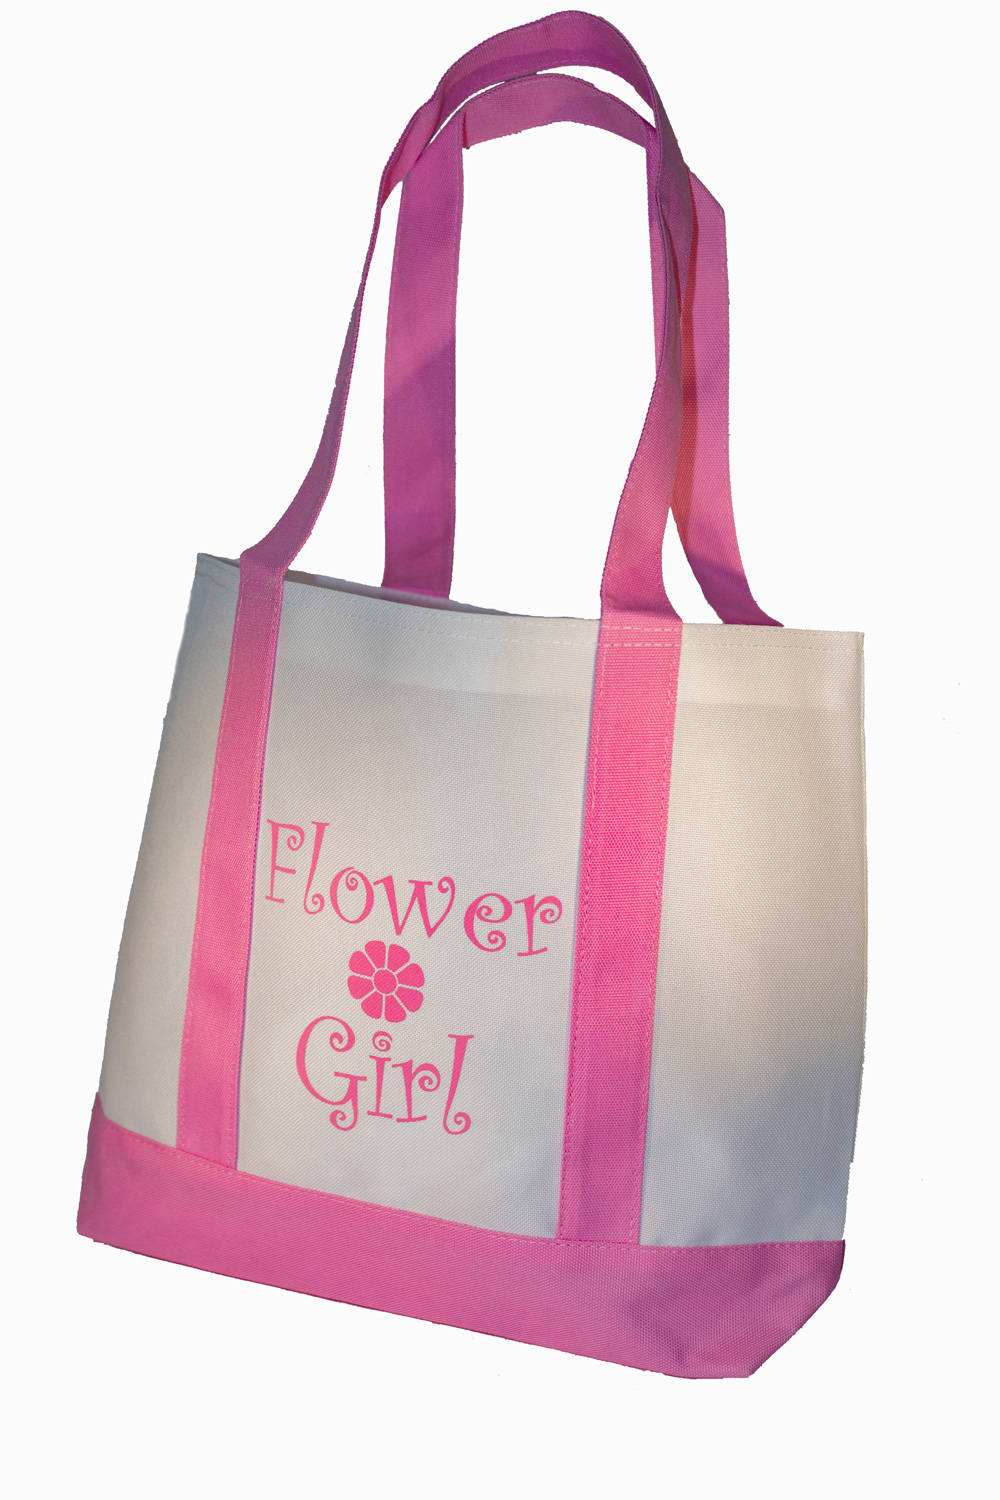 Flower Girl Tote Bag with Pink Straps Wedding Flower Girl | Etsy